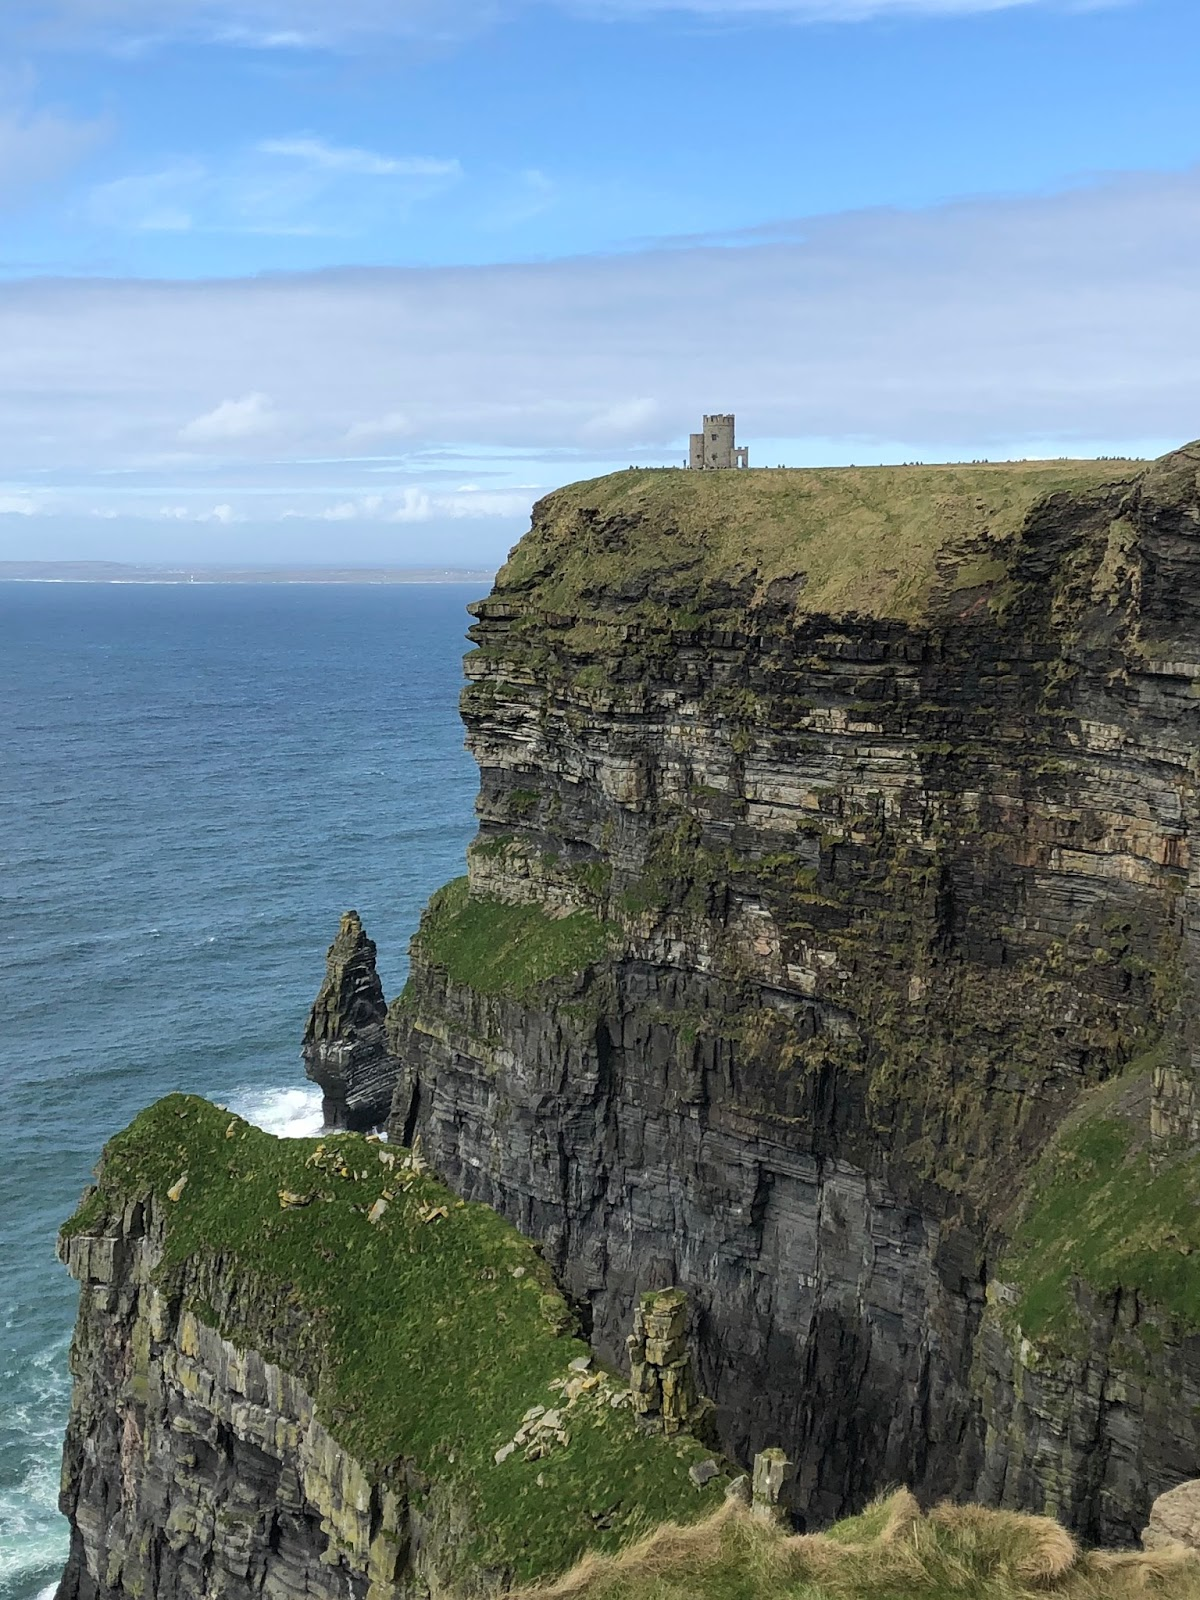 What to do in Galway, travel guide for galway, Cliffs of Moher, where to eat in Galway